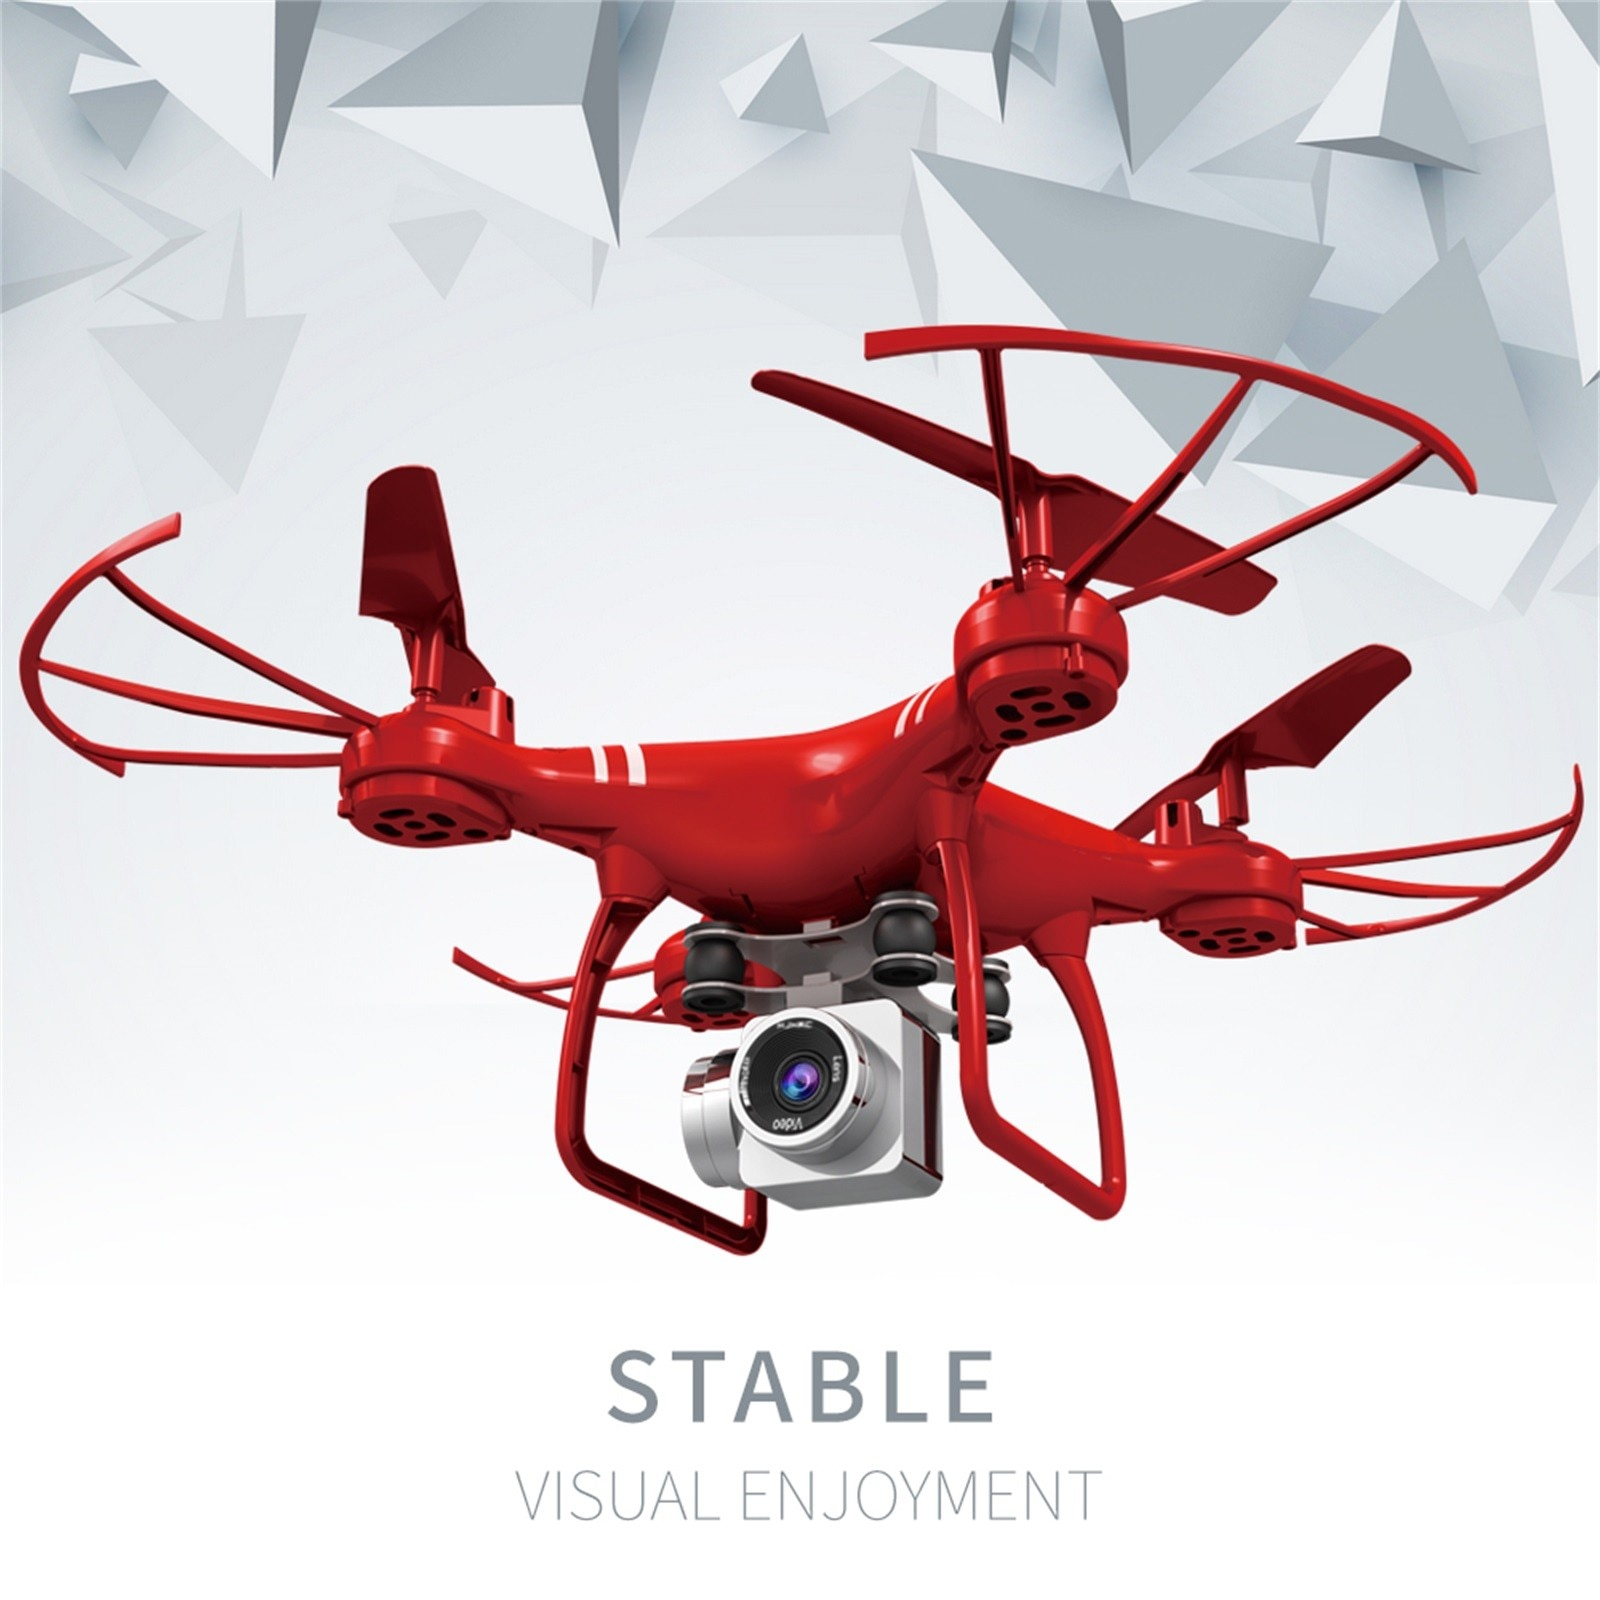 Hd68104fbf63340cb895c752d234787a0O - Hjhrc Four-axis Aerial Photography Aircraft Drone With Camera Hd 4k Wifi Fpv Foldable Drone Height Holding Headless Quadcopter